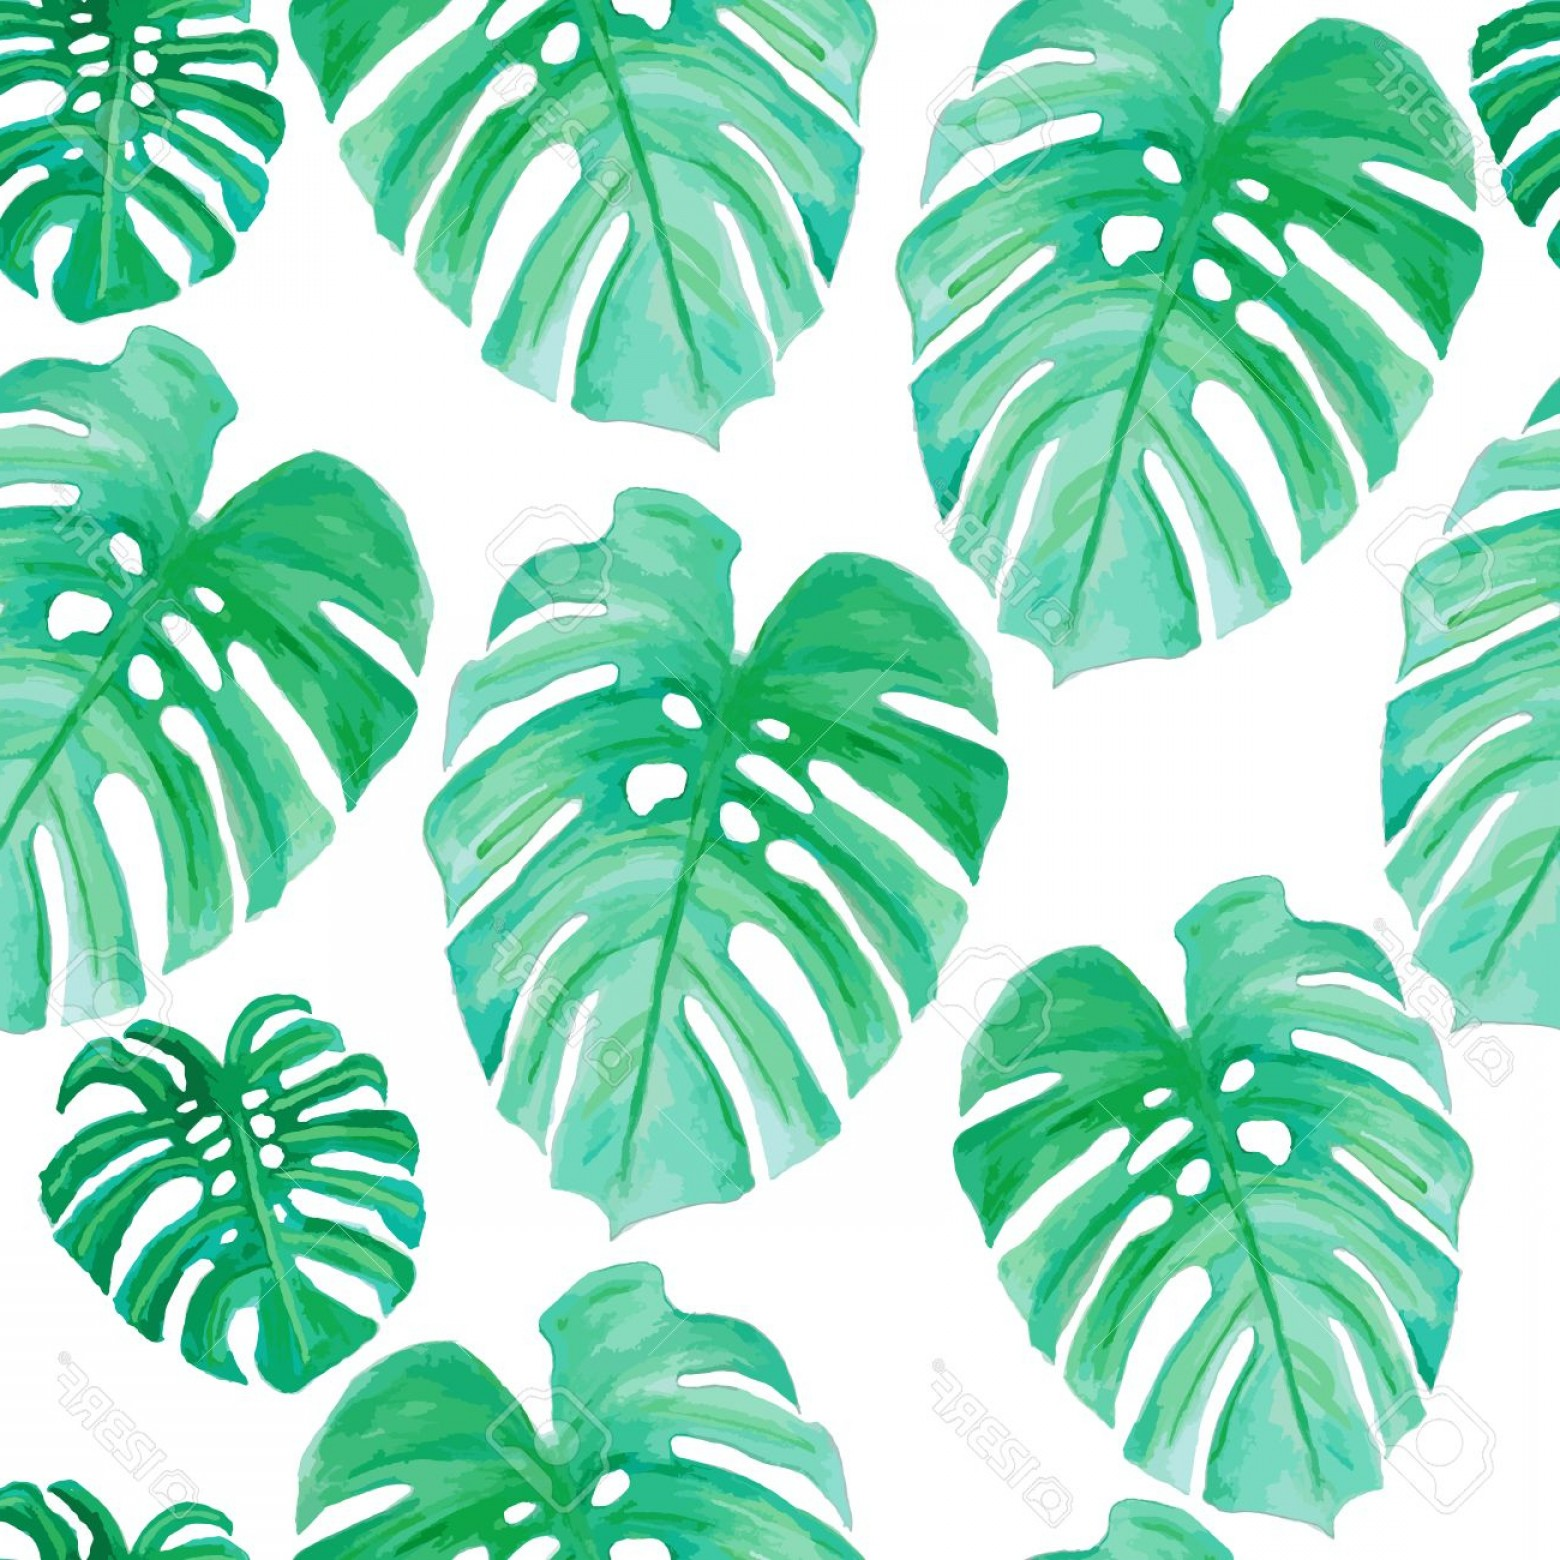 Watercolor Palm Tree Vector: Palm Tree Leaf Drawing Watercolor Drawing Palm Trees Or Green Leaves Seamless Pattern